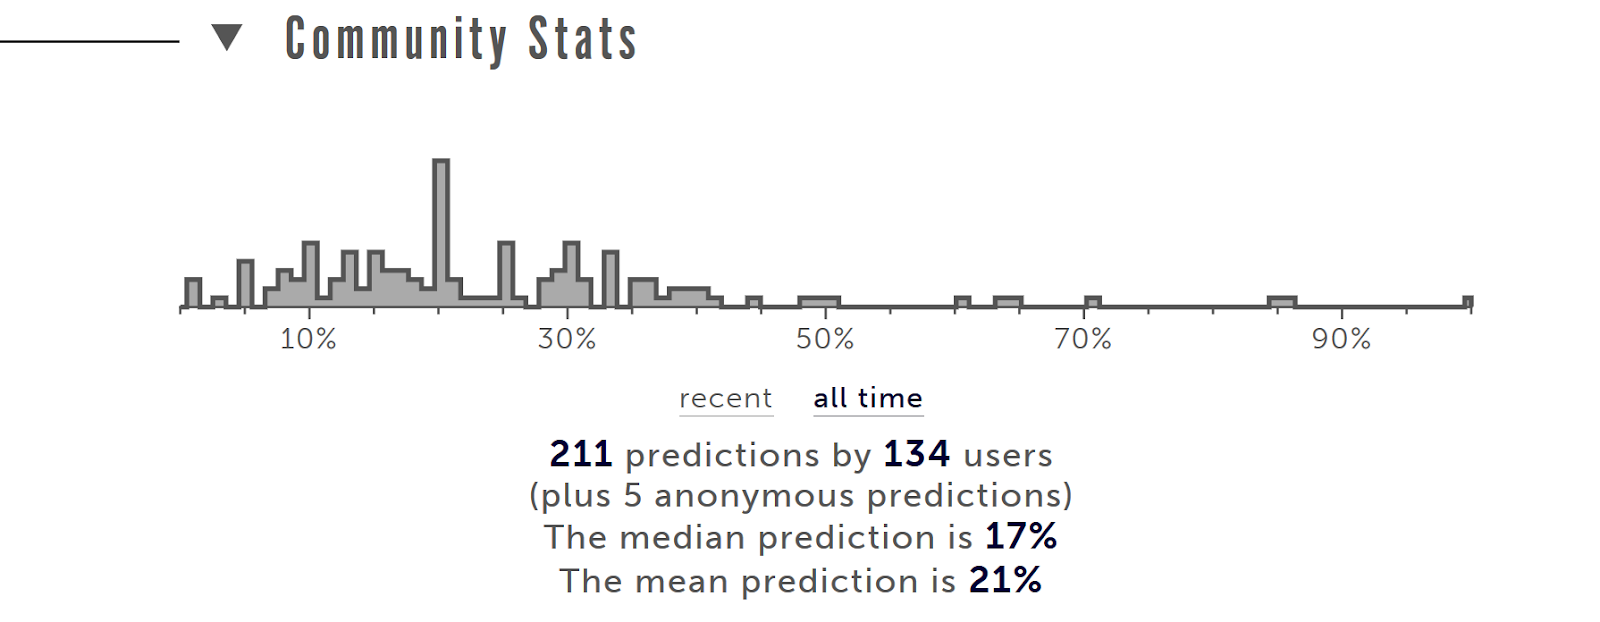 Picture showing the Metaculus community forecasts on this question, with the majority of the forecasts in the 10-30% range, with very few above 50% and only one forecast above 75%.